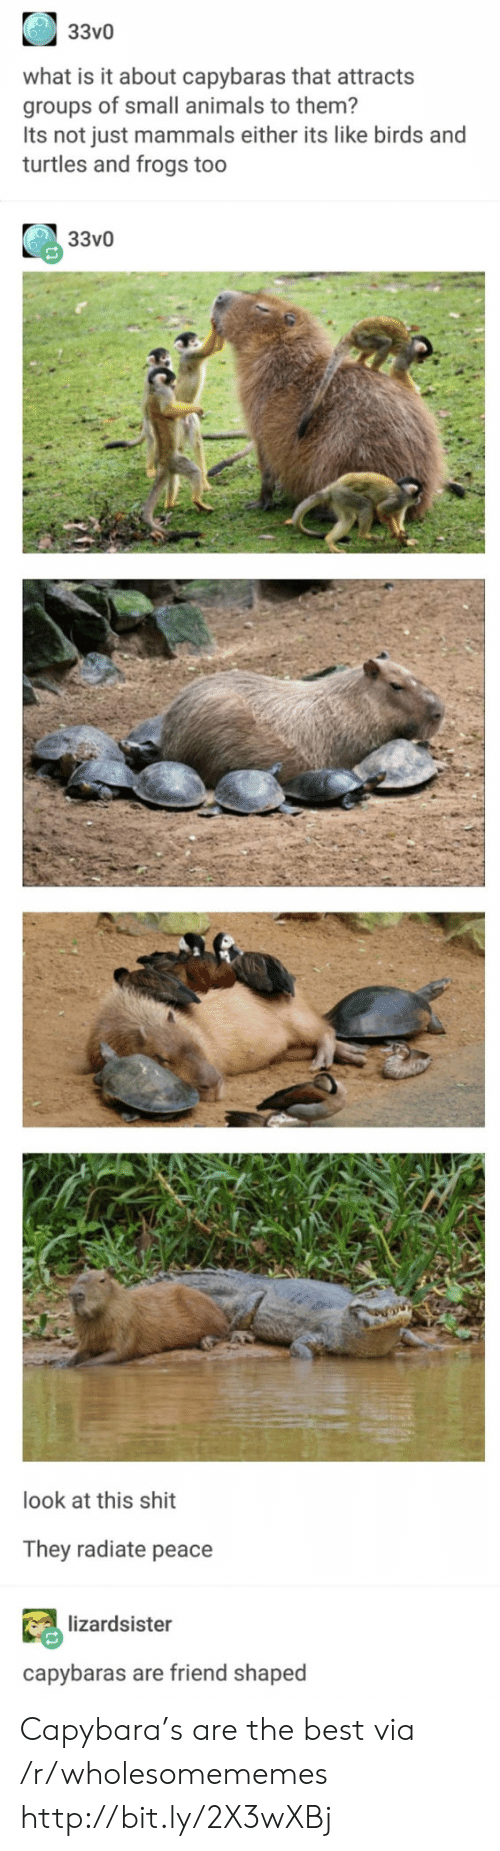 mammals: 33v0  what is it about capybaras that attracts  groups of small animals to them?  Its not just mammals either its like birds and  turtles and frogs too  33v0  look at this shit  They radiate peace  lizardsister  capybaras are friend shaped Capybara's are the best via /r/wholesomememes http://bit.ly/2X3wXBj